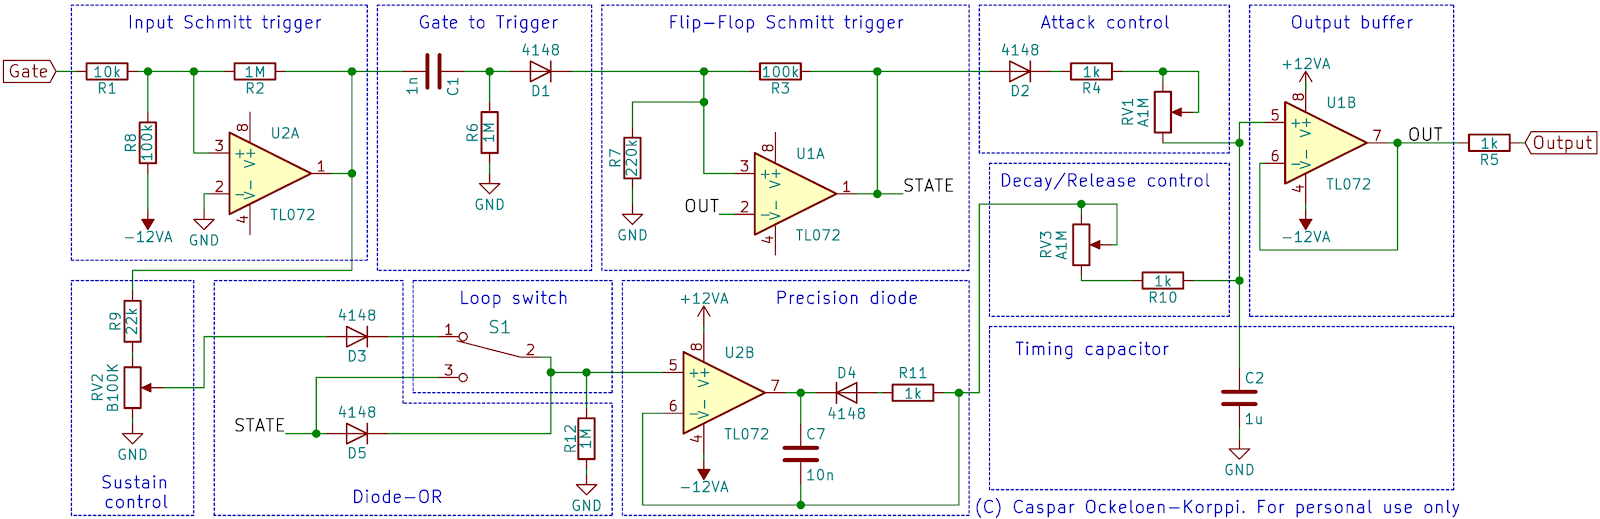 small resolution of the gate input is conditioned by u2a using positive feedback r2 to create hysteresis and form a schmitt trigger this turns any input gate signal into a